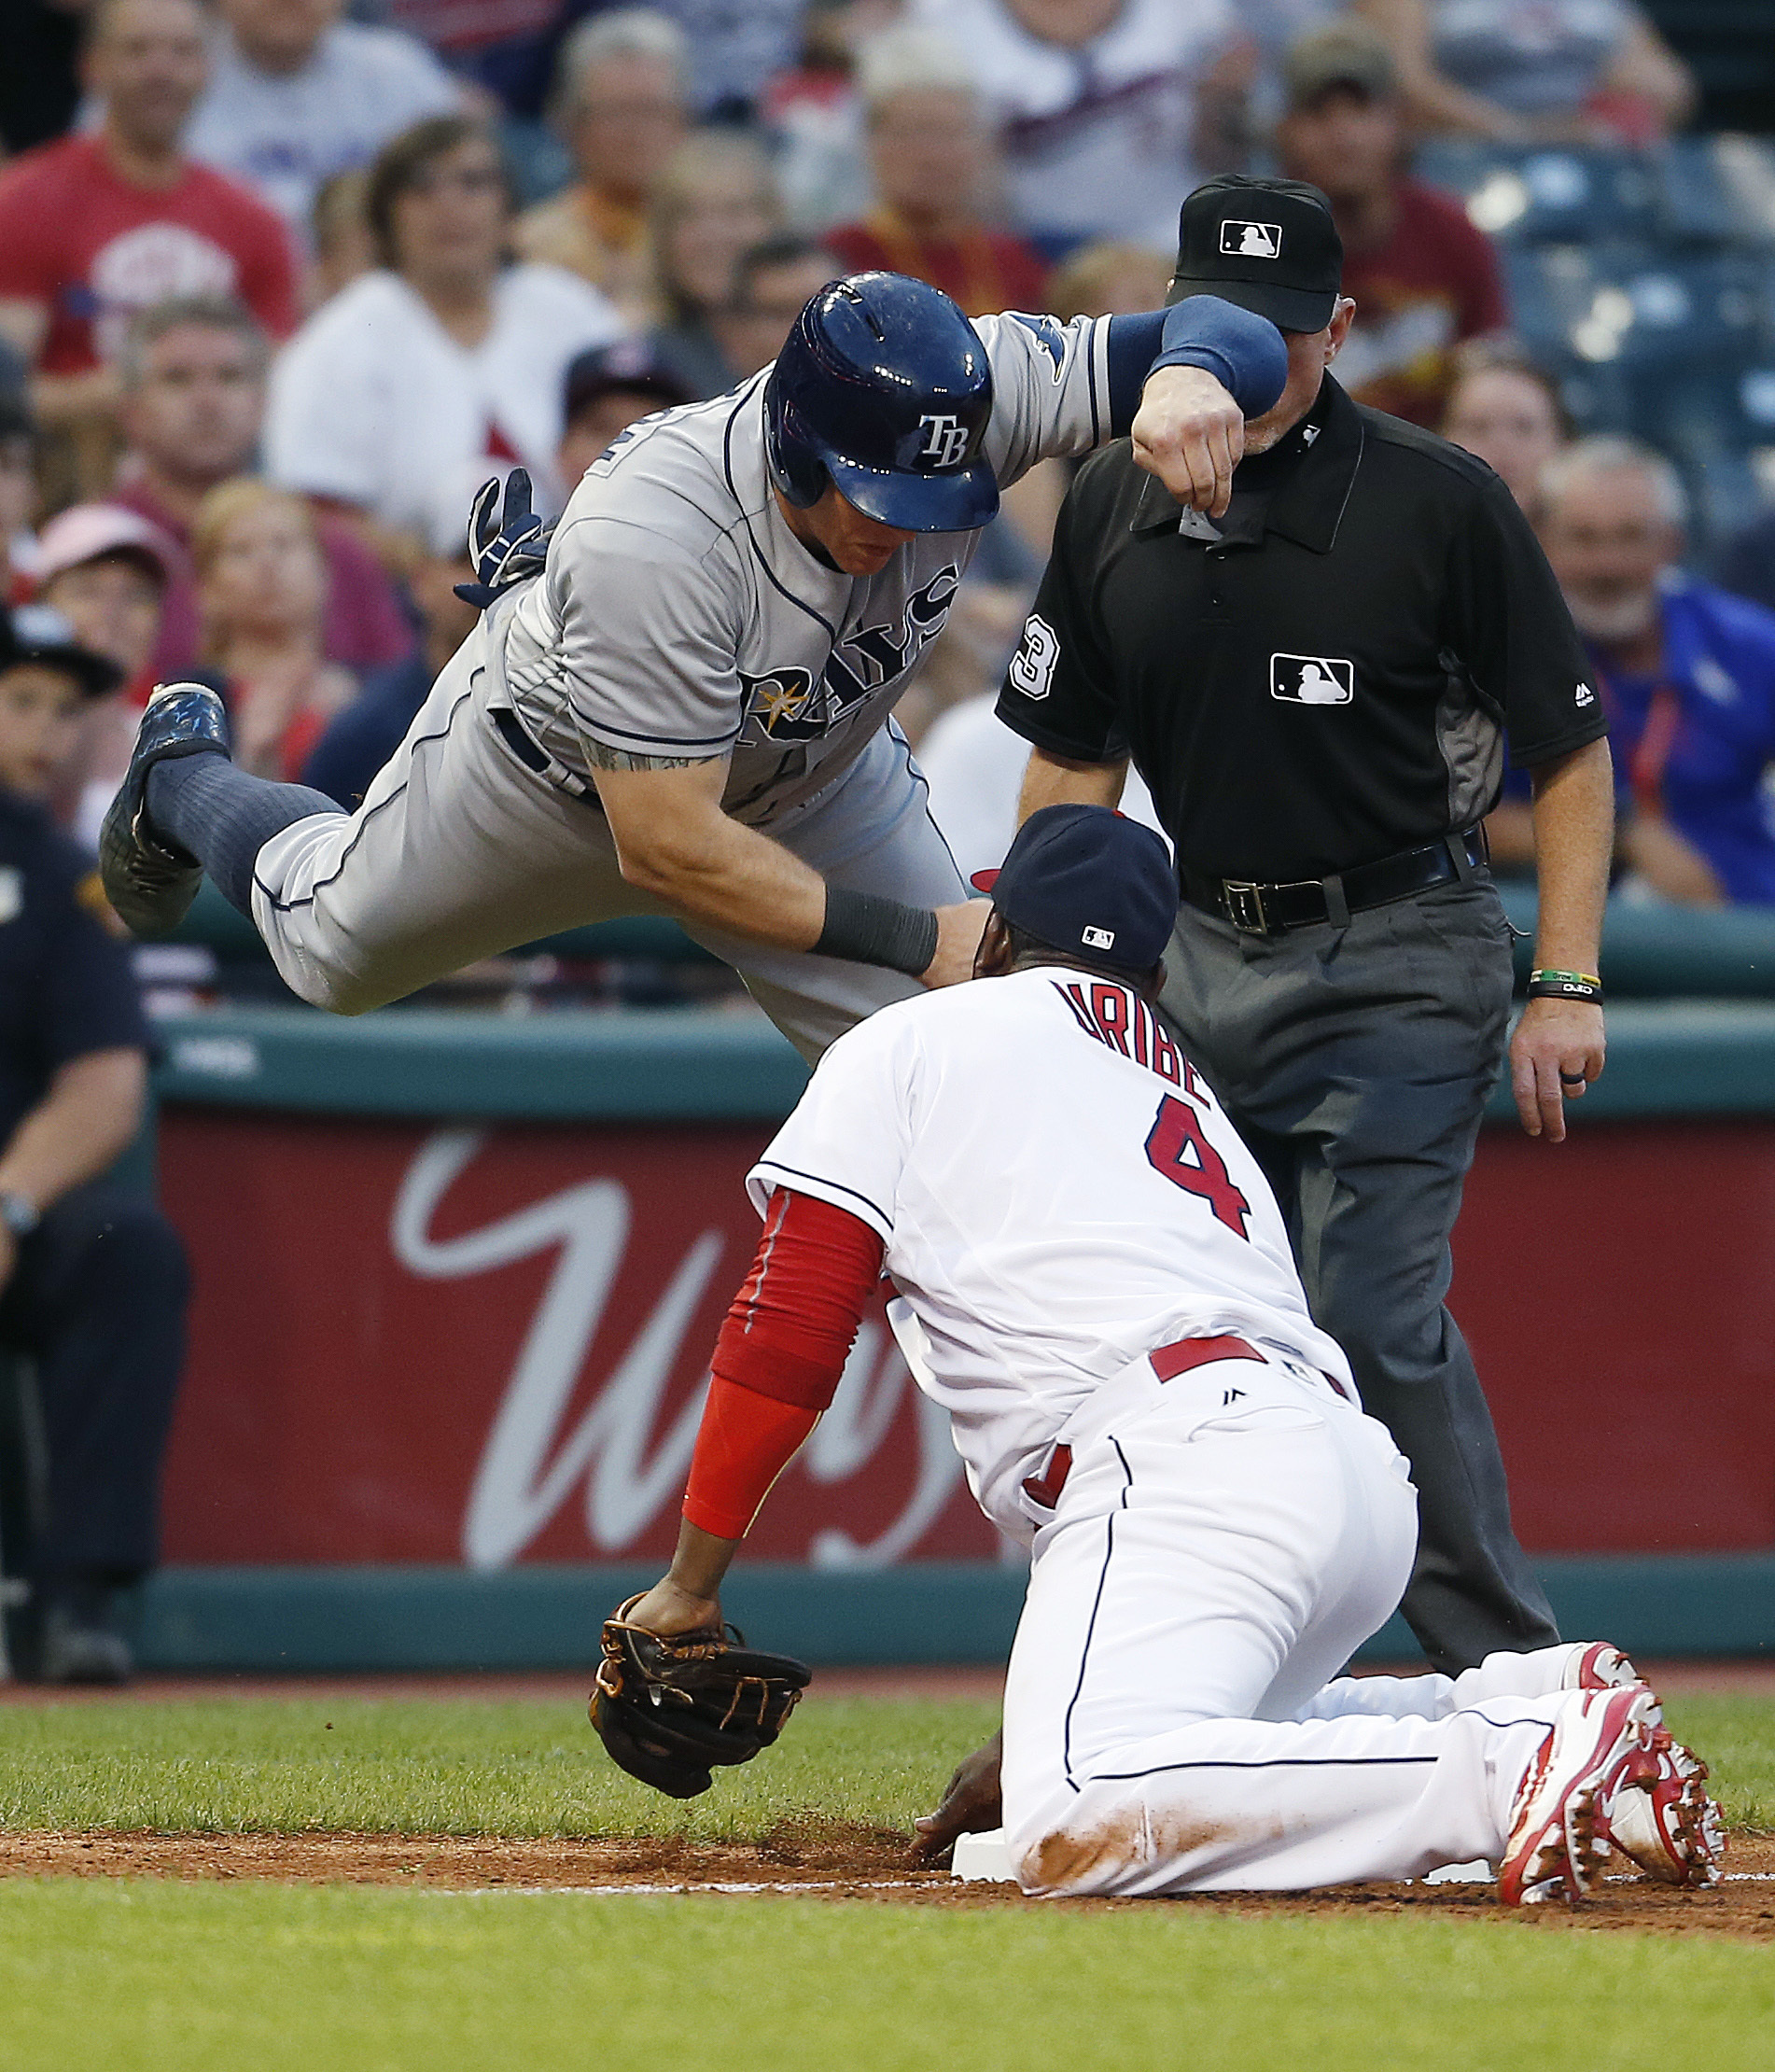 Cleveland Indians' Juan Uribe (4) tags out Tampa Bay Rays' Logan Morrison (7) at third base after Morrison over ran the base as third base umpire Lance Barksdale looks on during the seventh inning of a baseball game, Wednesday, June 22, 2016, in Cleveland